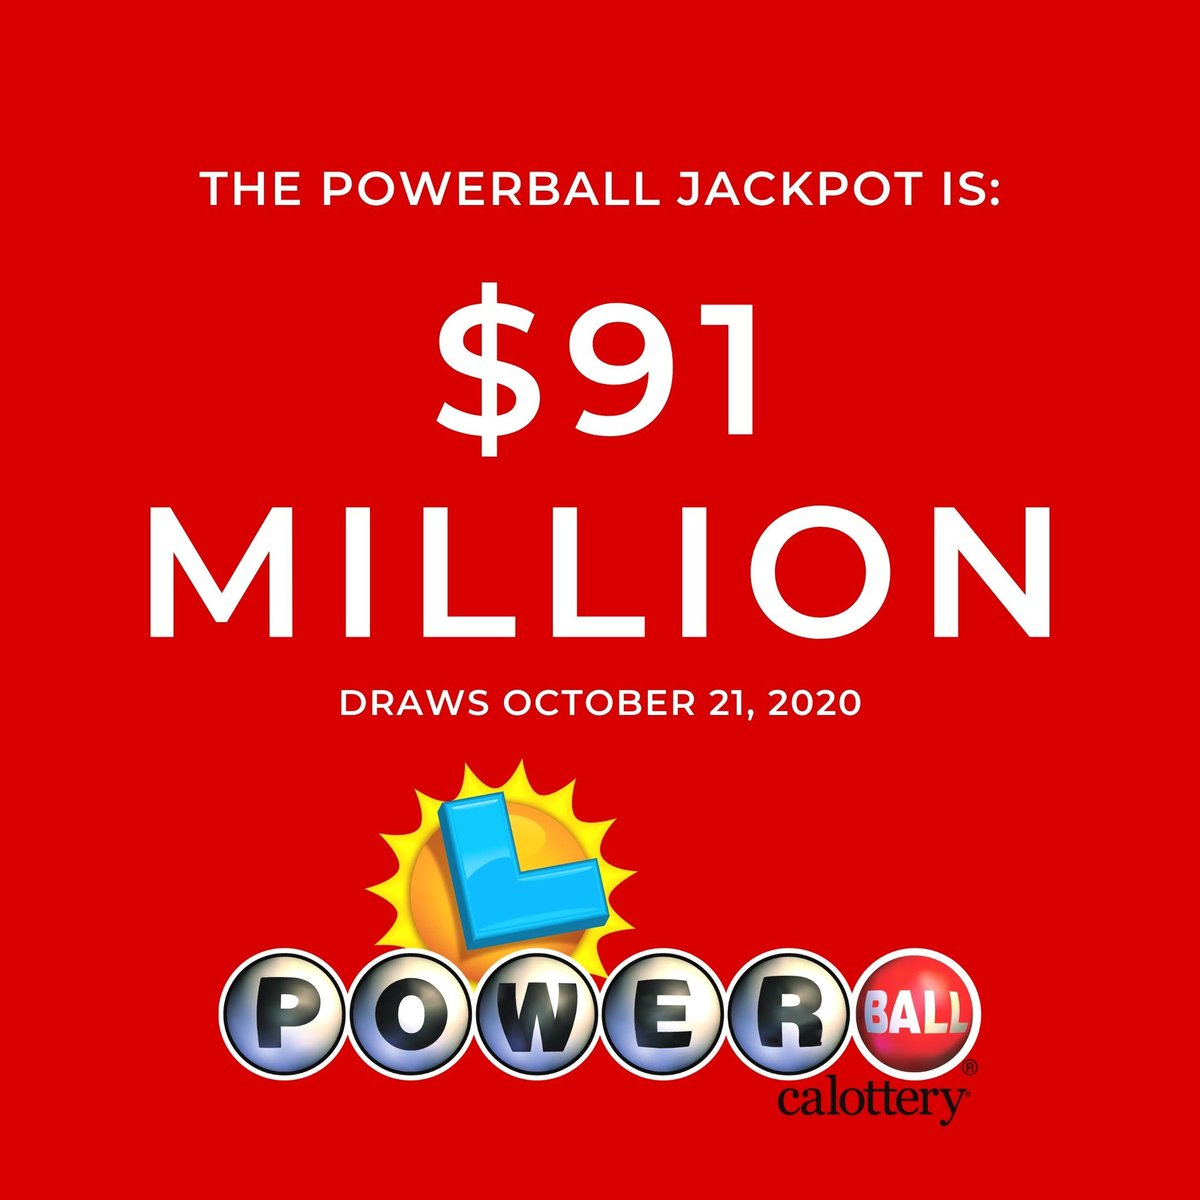 Raise your hand if you already have your ticket for tonight's $91 million #Powerball jackpot. #CALottery #JackpotAlert https://t.co/fmleVRYGOz